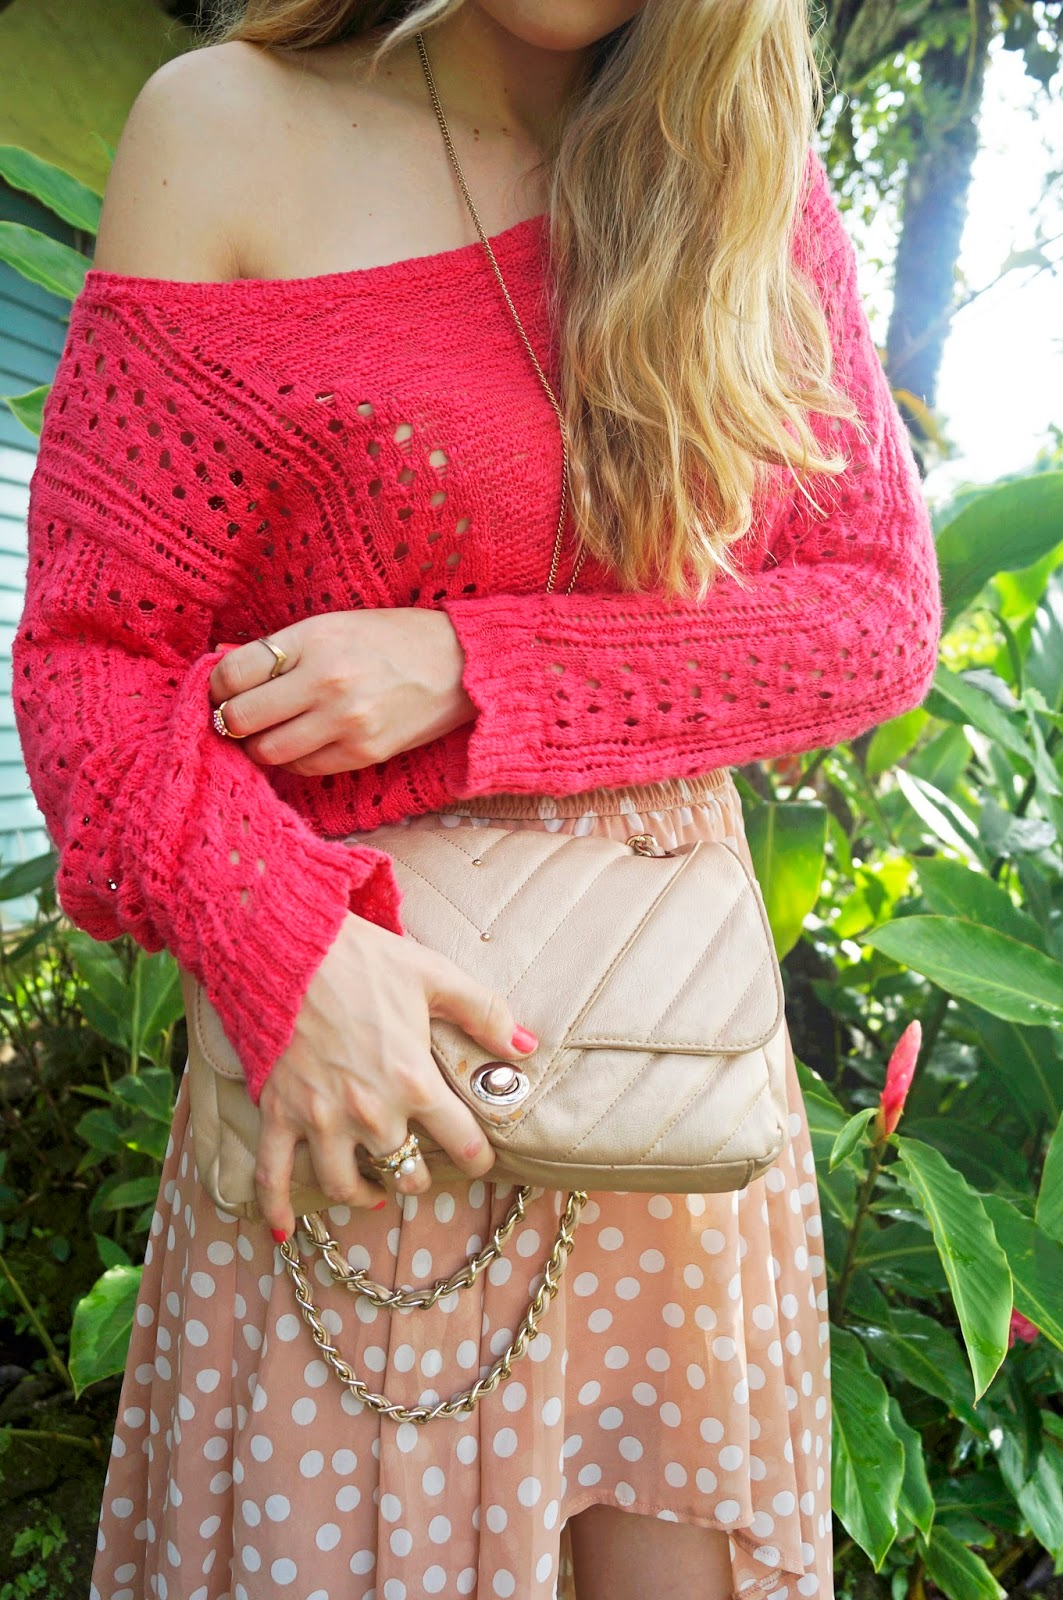 Pair a cozy sweater with a breezy skirt for an unexpected combo!